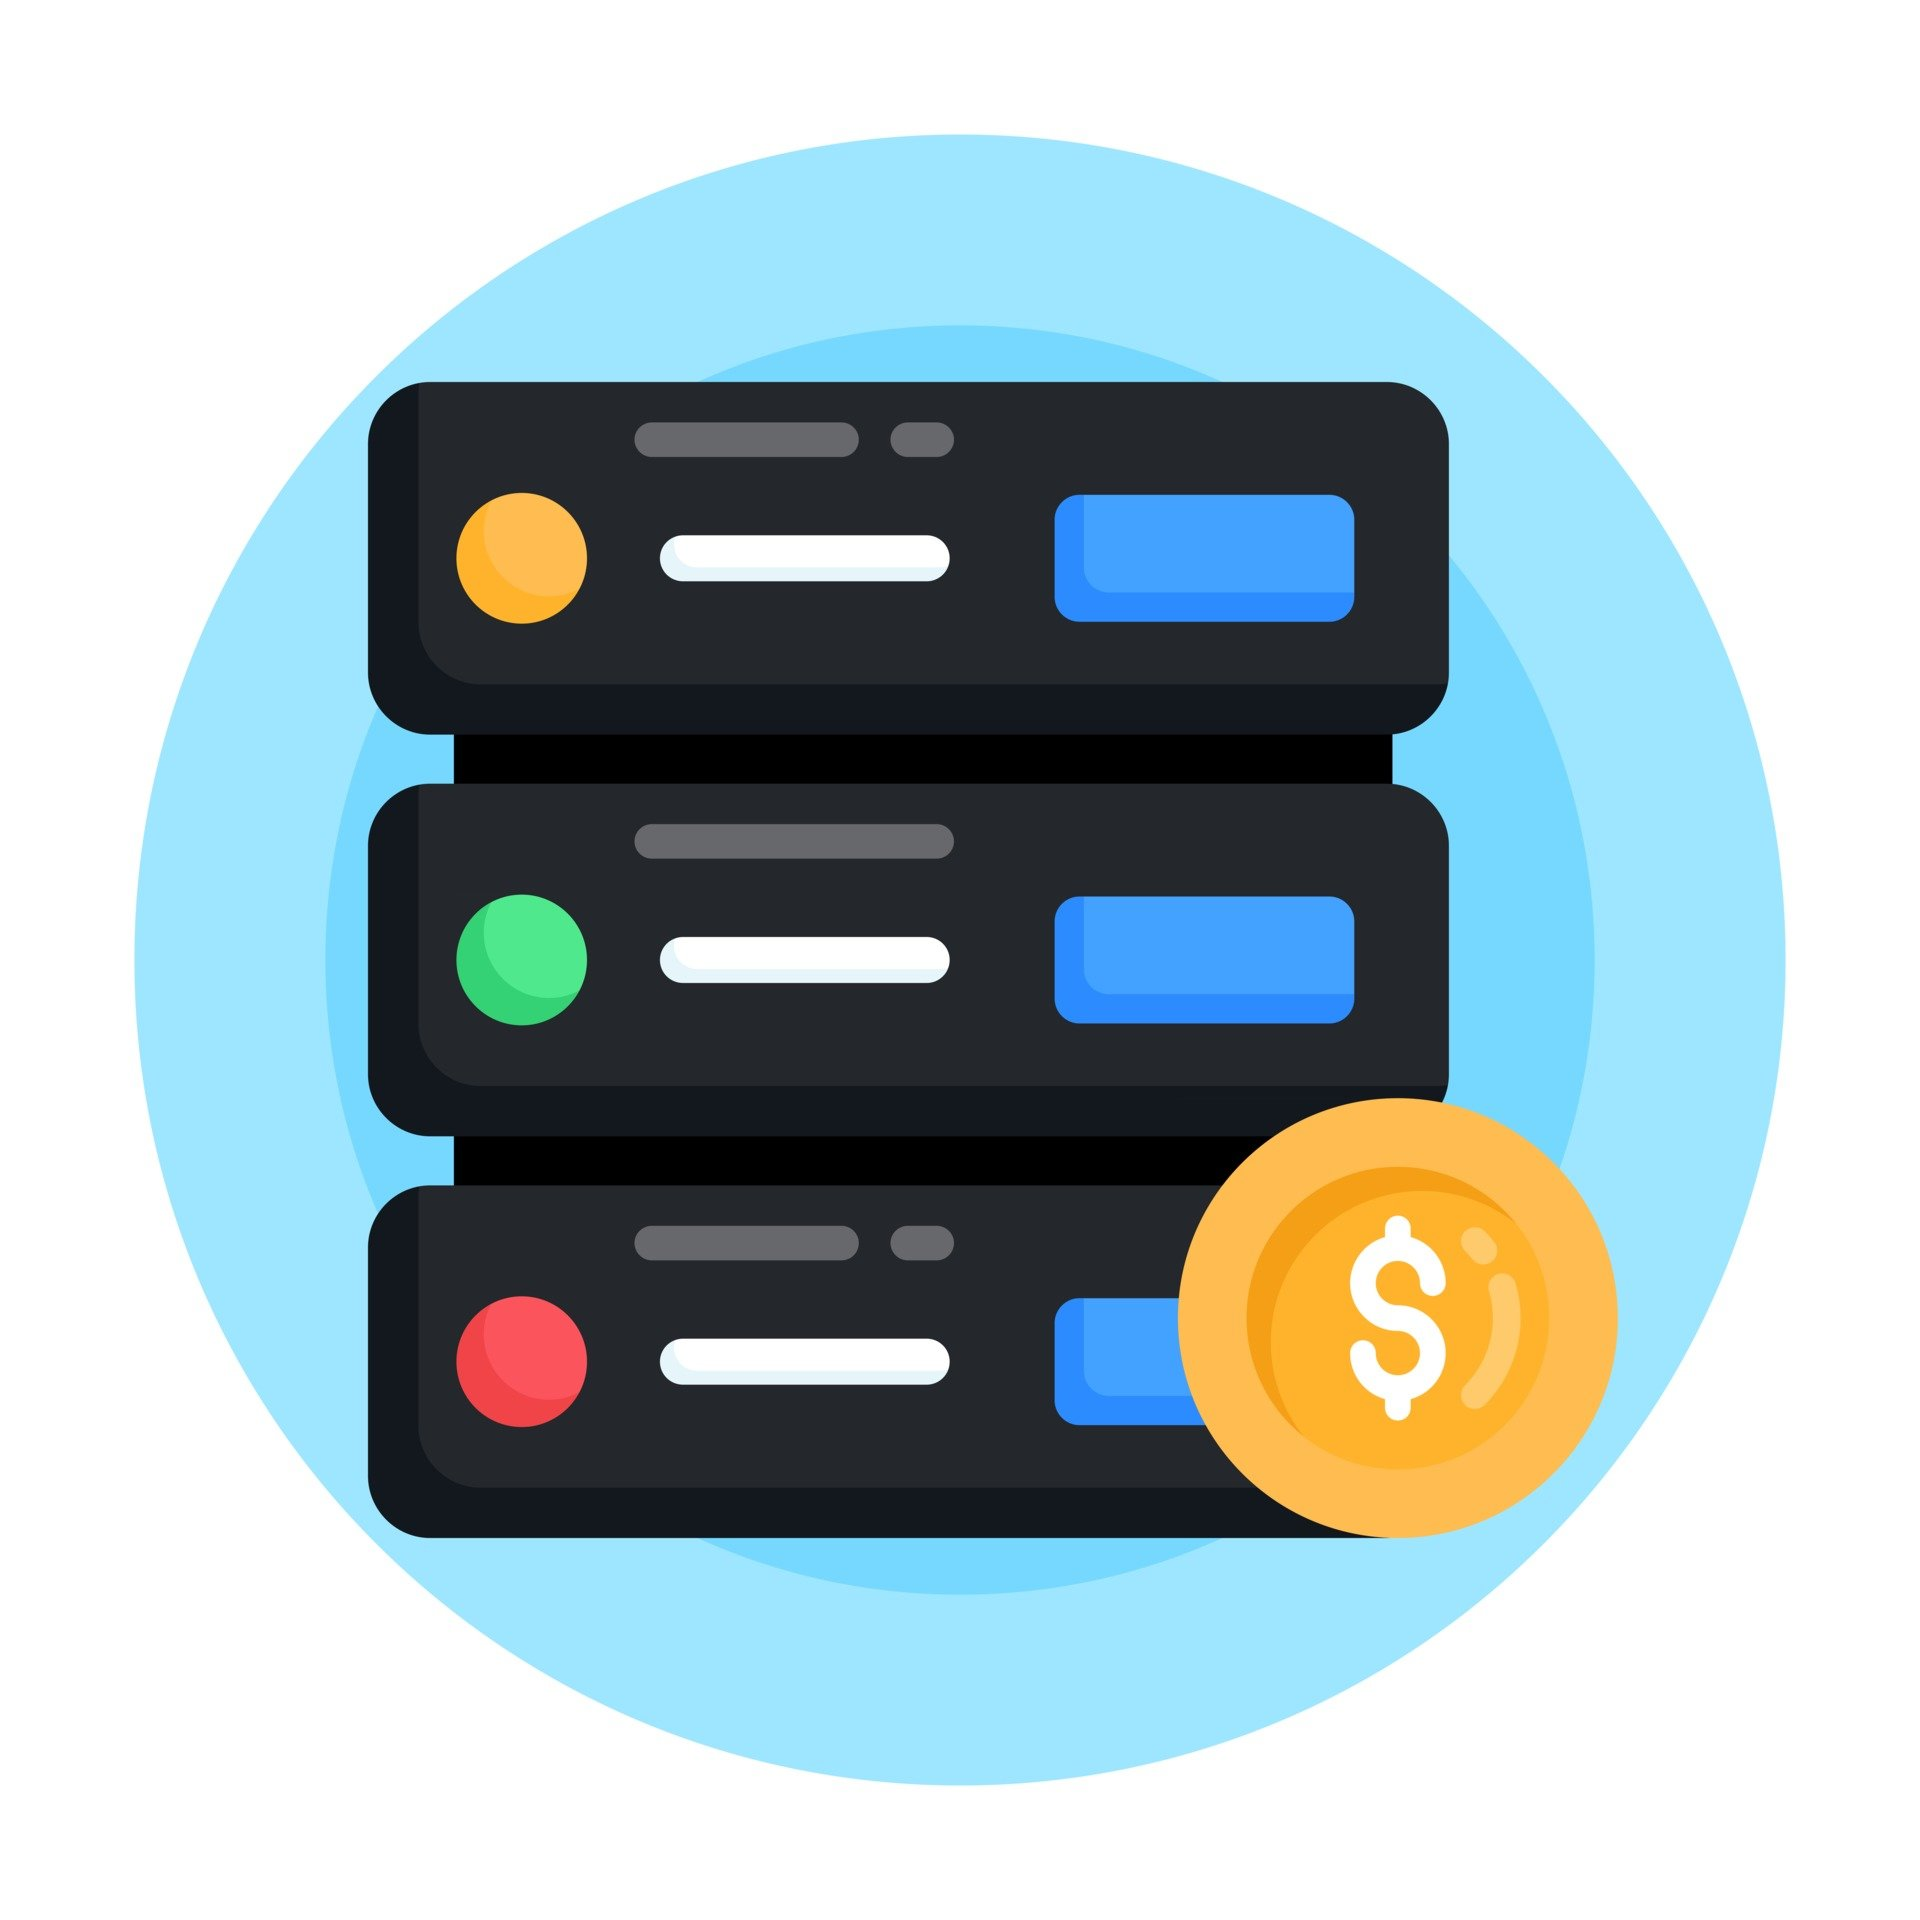 server-hosting-and-payment-vector